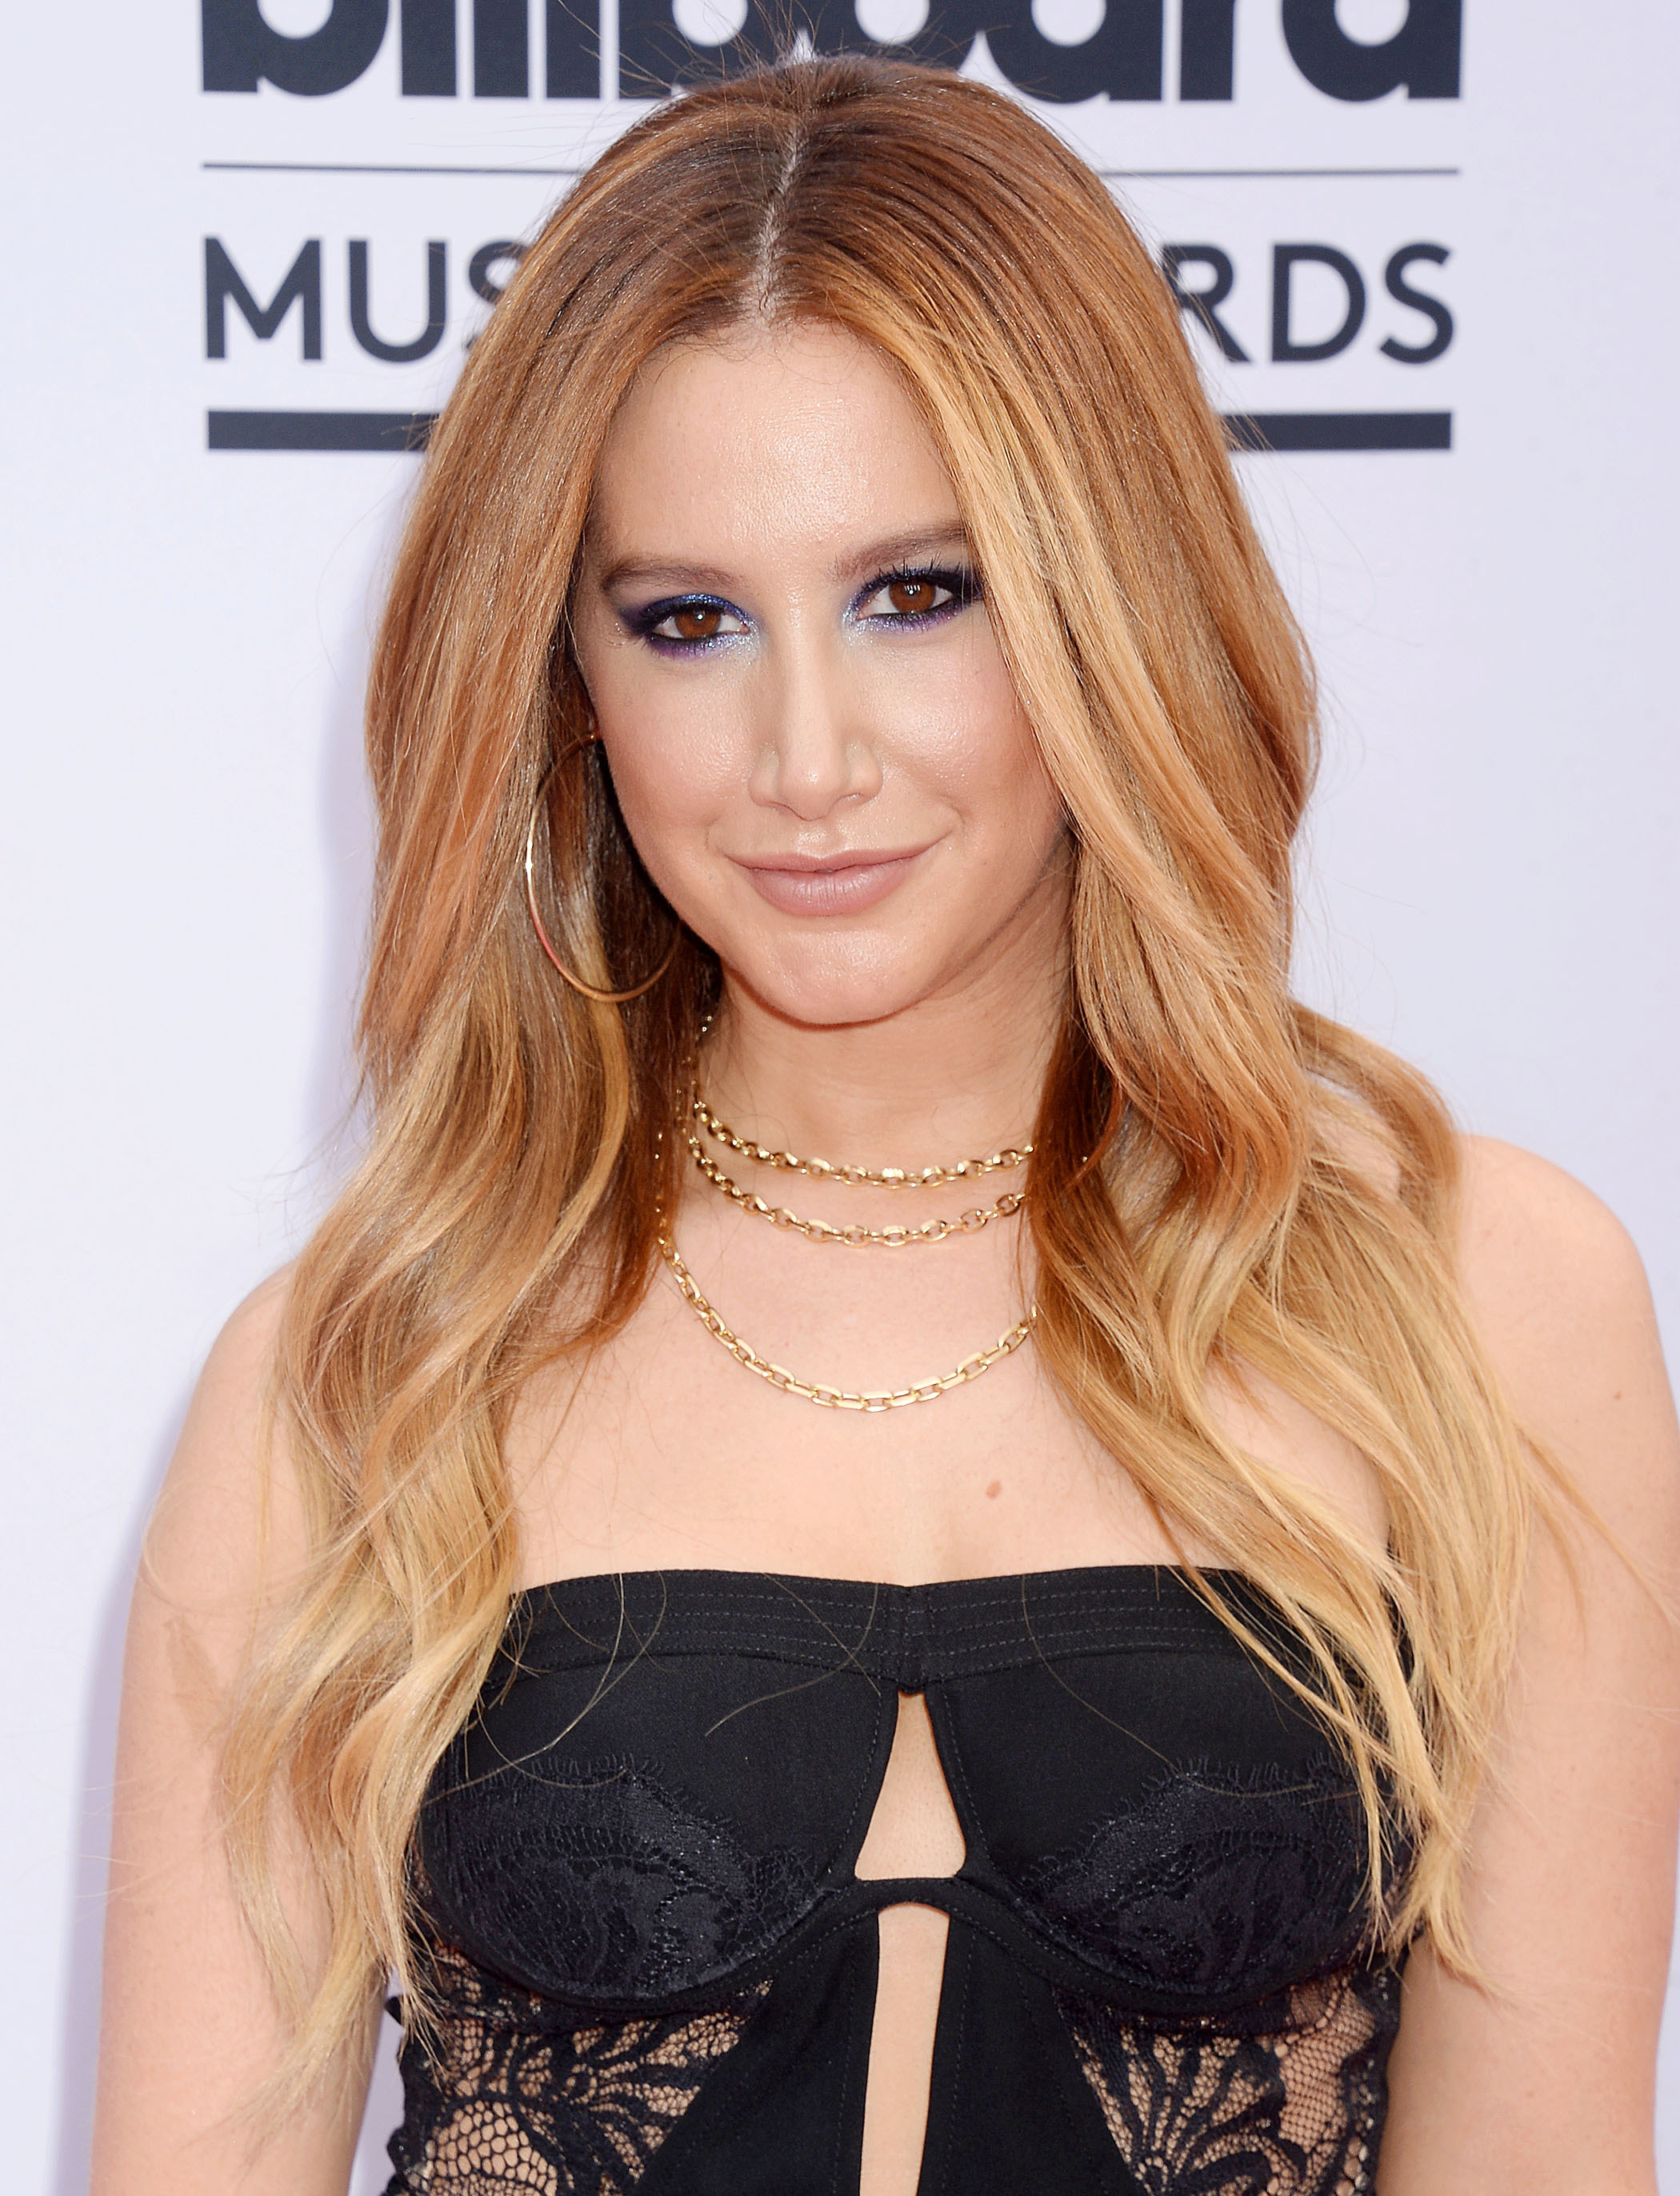 Ashley Tisdale arrives at the Billboard Music Awards at T Mobile Arena in Las Vegas on May 21, 2017.